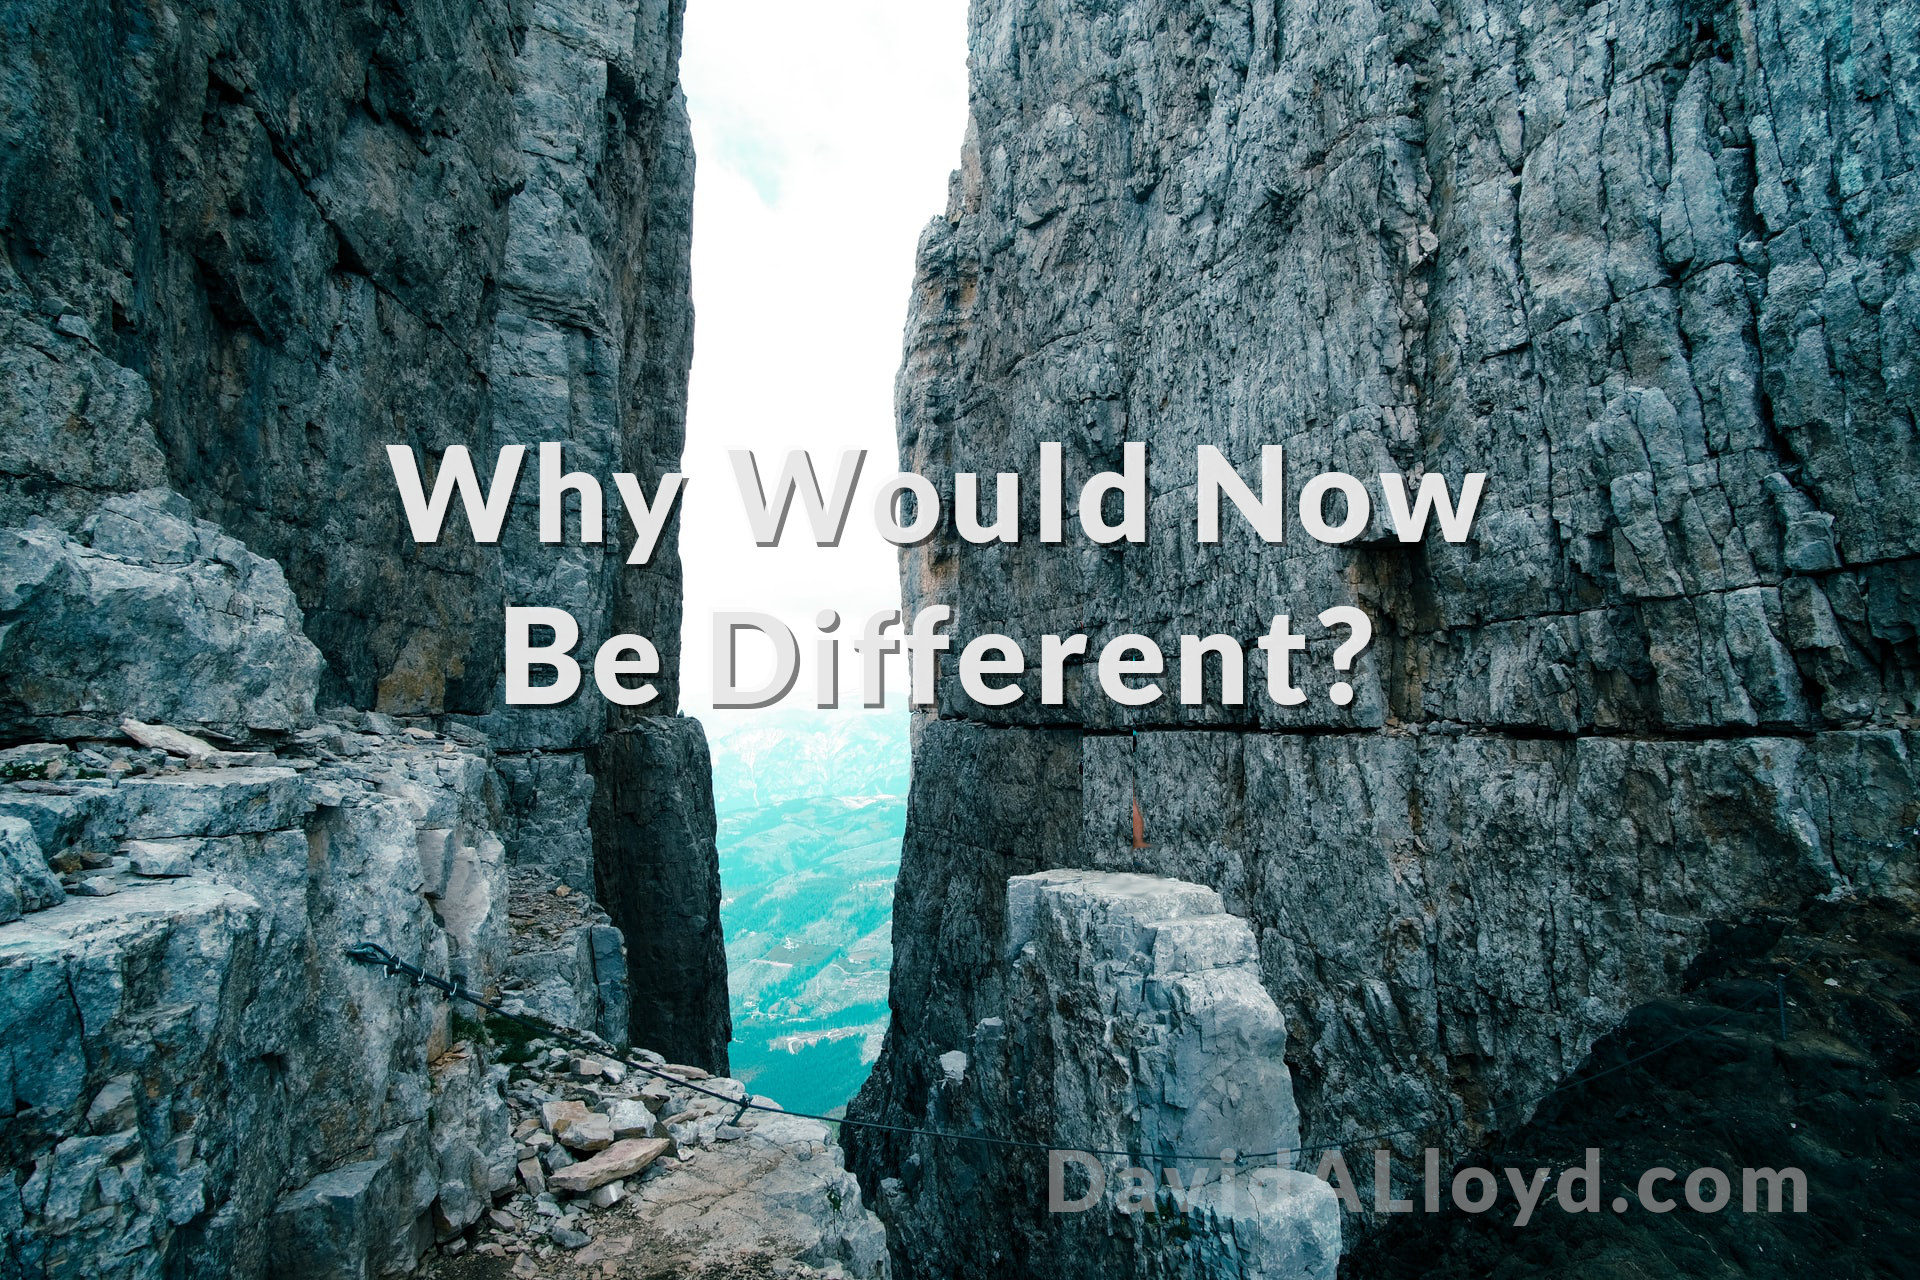 Why Would Now Be Different